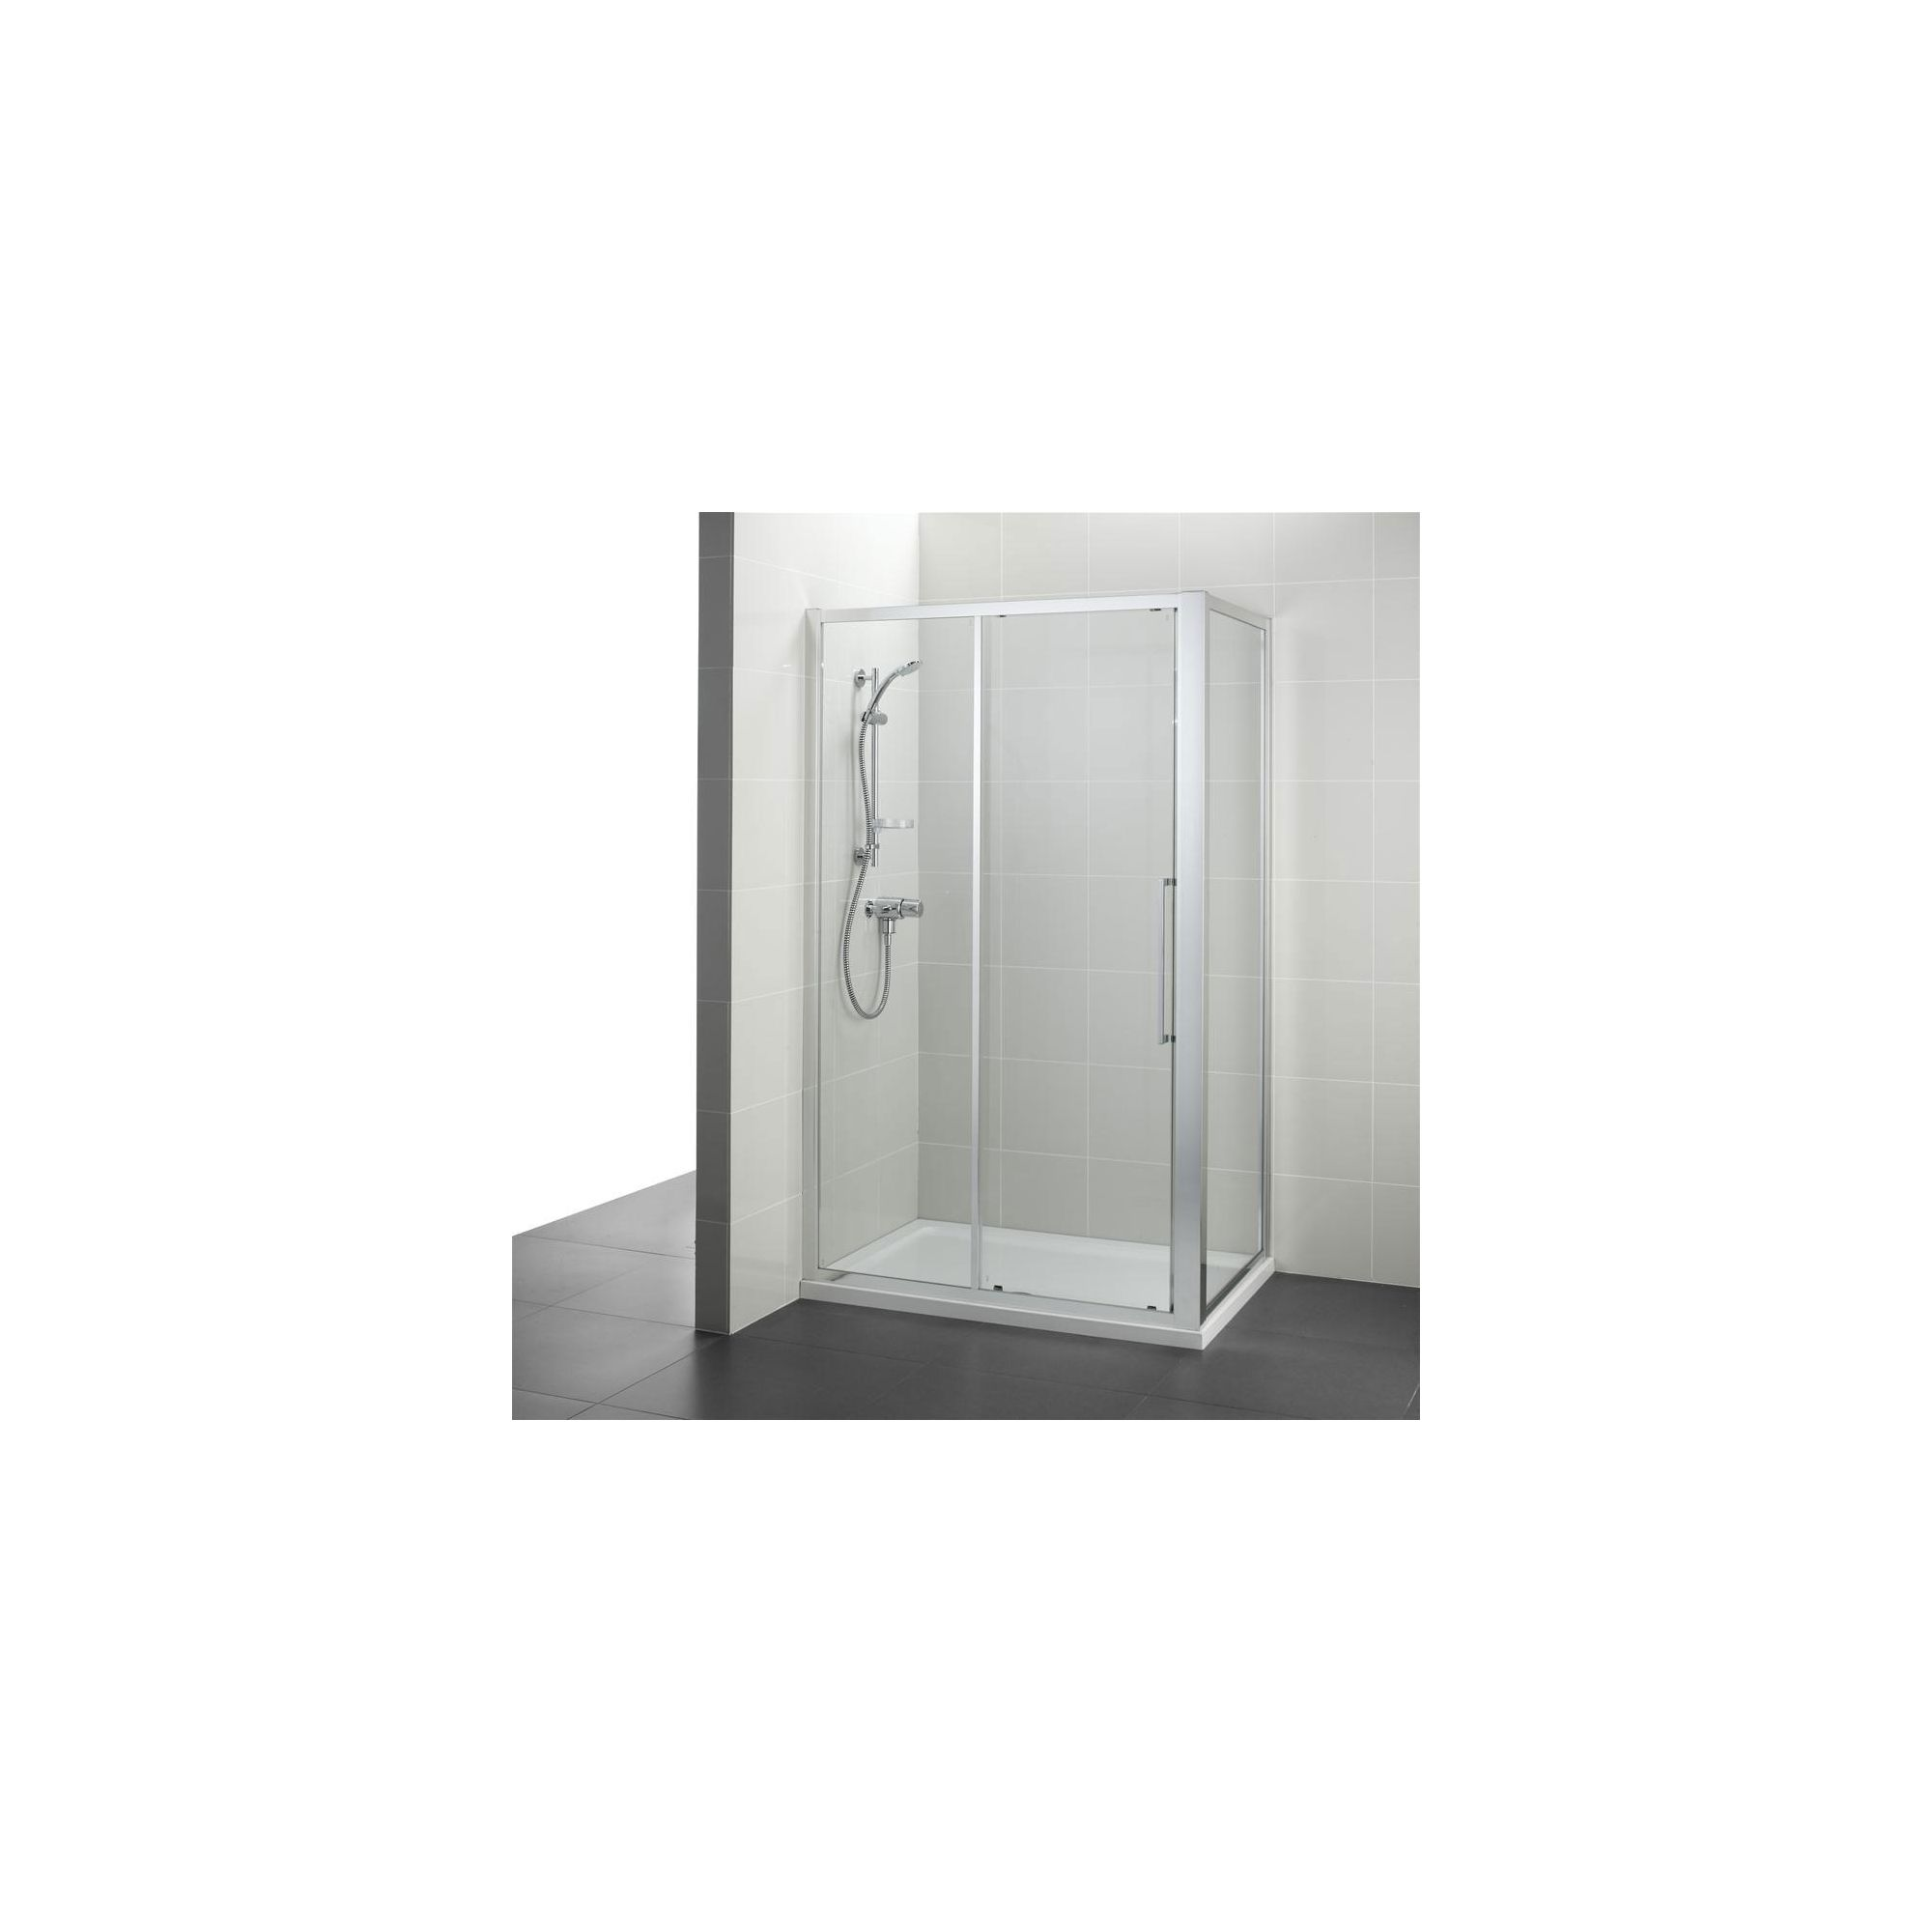 Ideal Standard Kubo Bi-Fold Door Shower Enclosure, 760mm x 760mm, Bright Silver Frame, Low Profile Tray at Tesco Direct